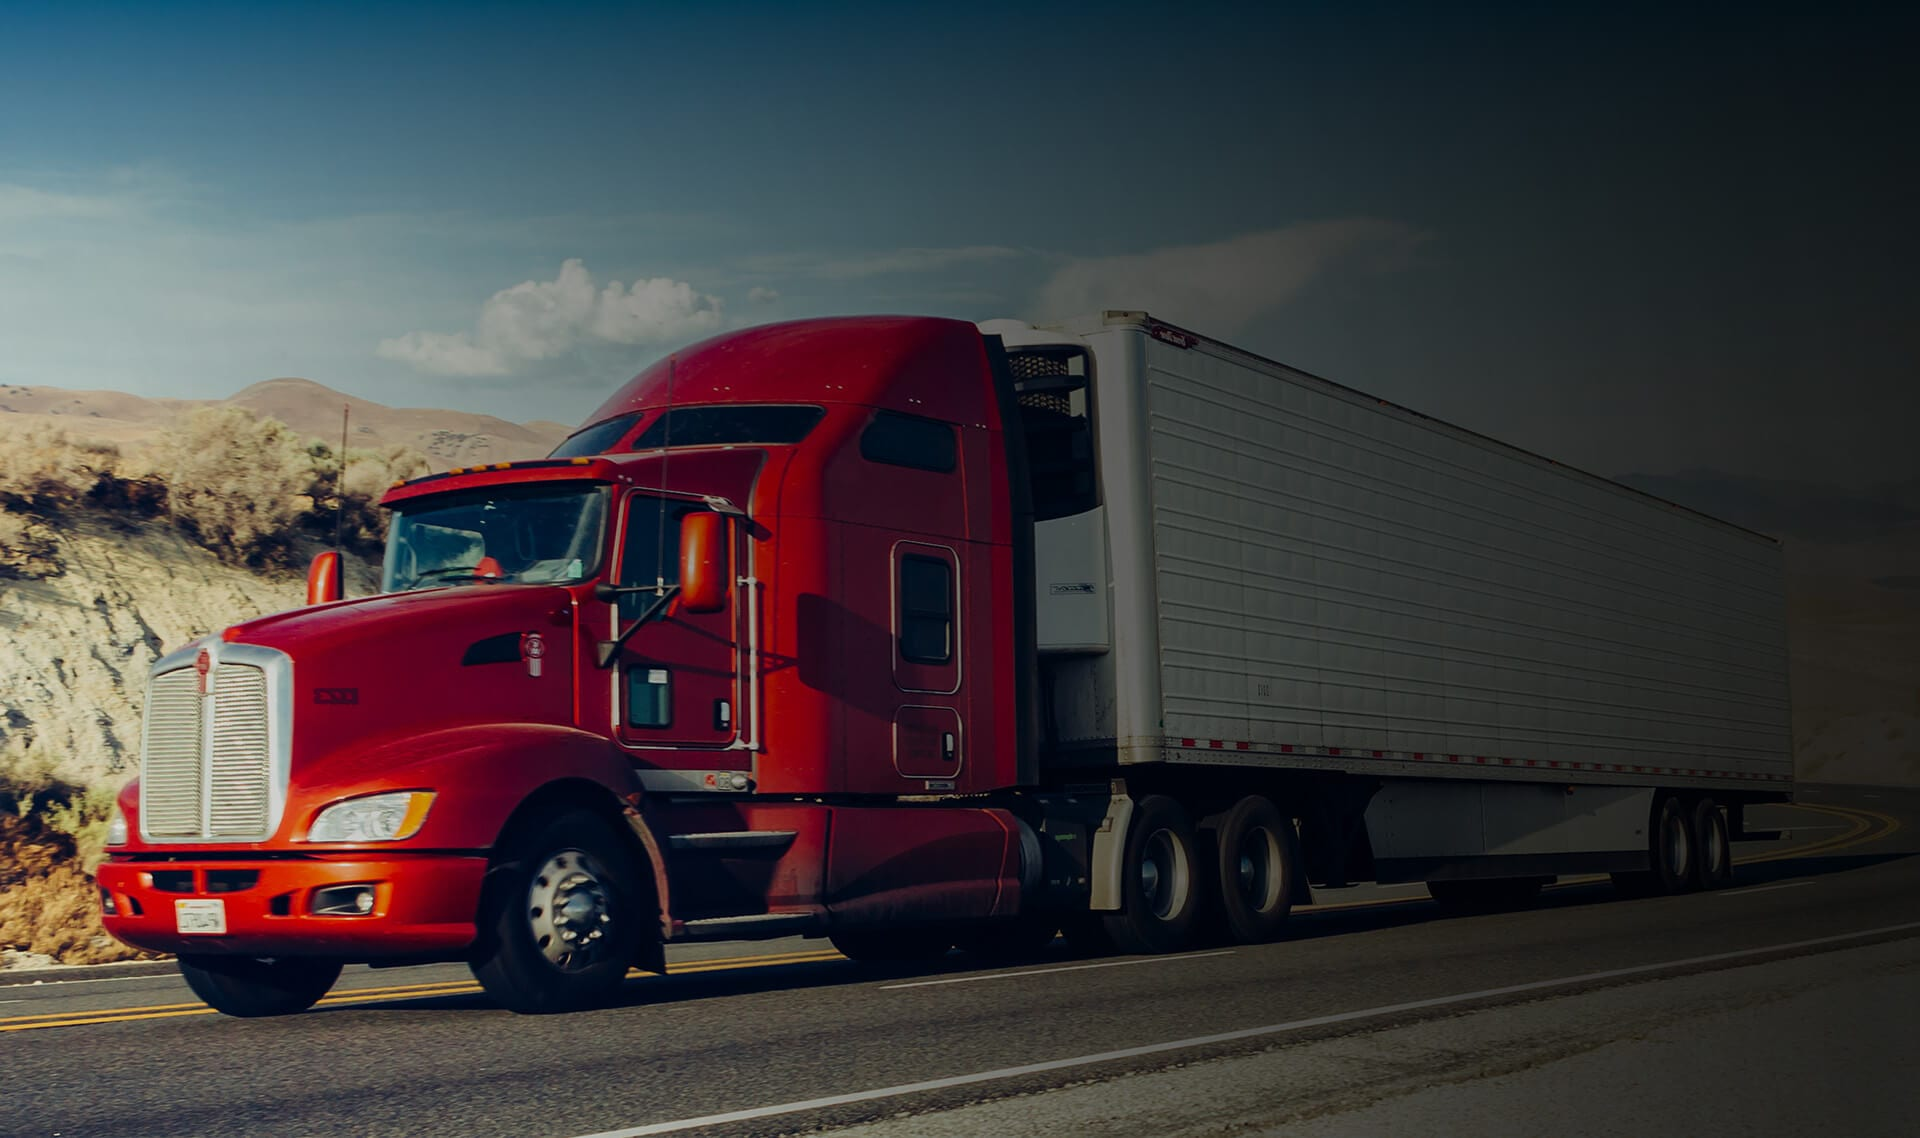 San Francisco Truck Accident Attorney - The Cartwright Law